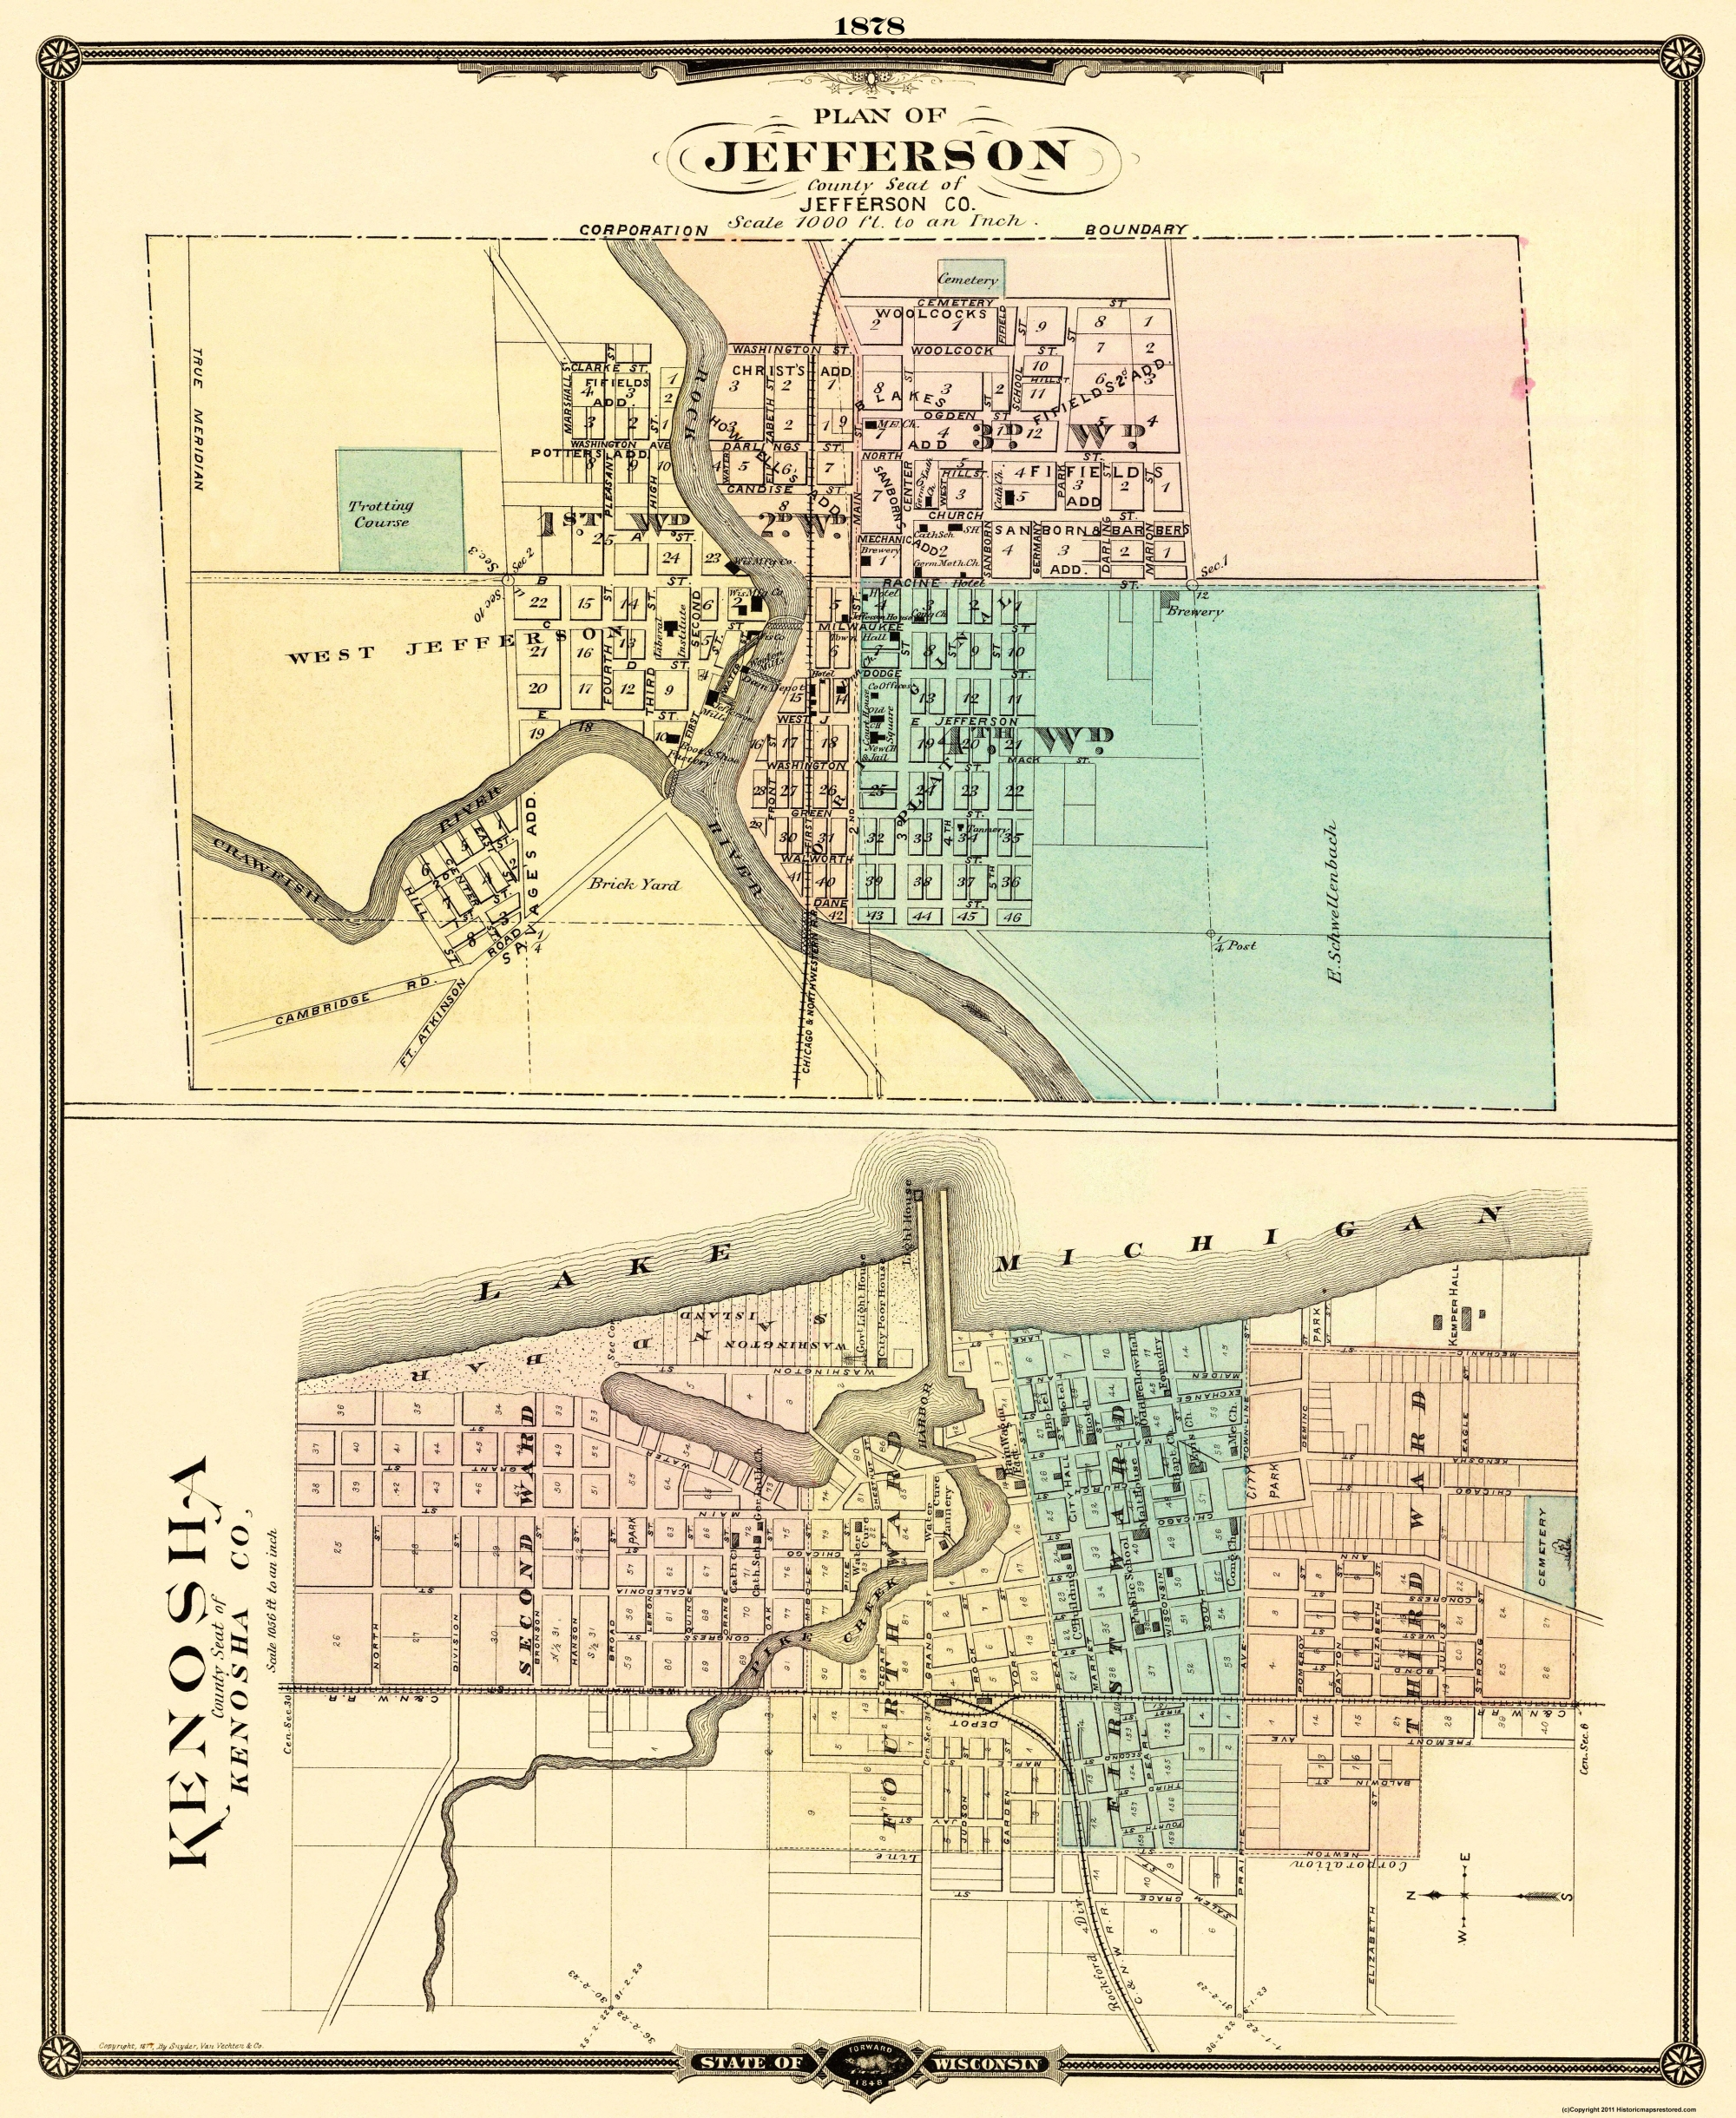 Kenosha, Jefferson Wisconsin - Snyder 1878 - 23 x 28.06 on attleboro massachusetts on map, ann arbor michigan on map, bozeman montana on map, kenosha cowi map, kenosha wi, kenosha county map, huntsville alabama on map, portsmouth virginia on map, southeast wisconsin map, fargo north dakota on map, wisconsin county map, trout lake wisconsin map, everett washington on map, kenosha wisc, terre haute indiana on map, city of kenosha wisconsin map,